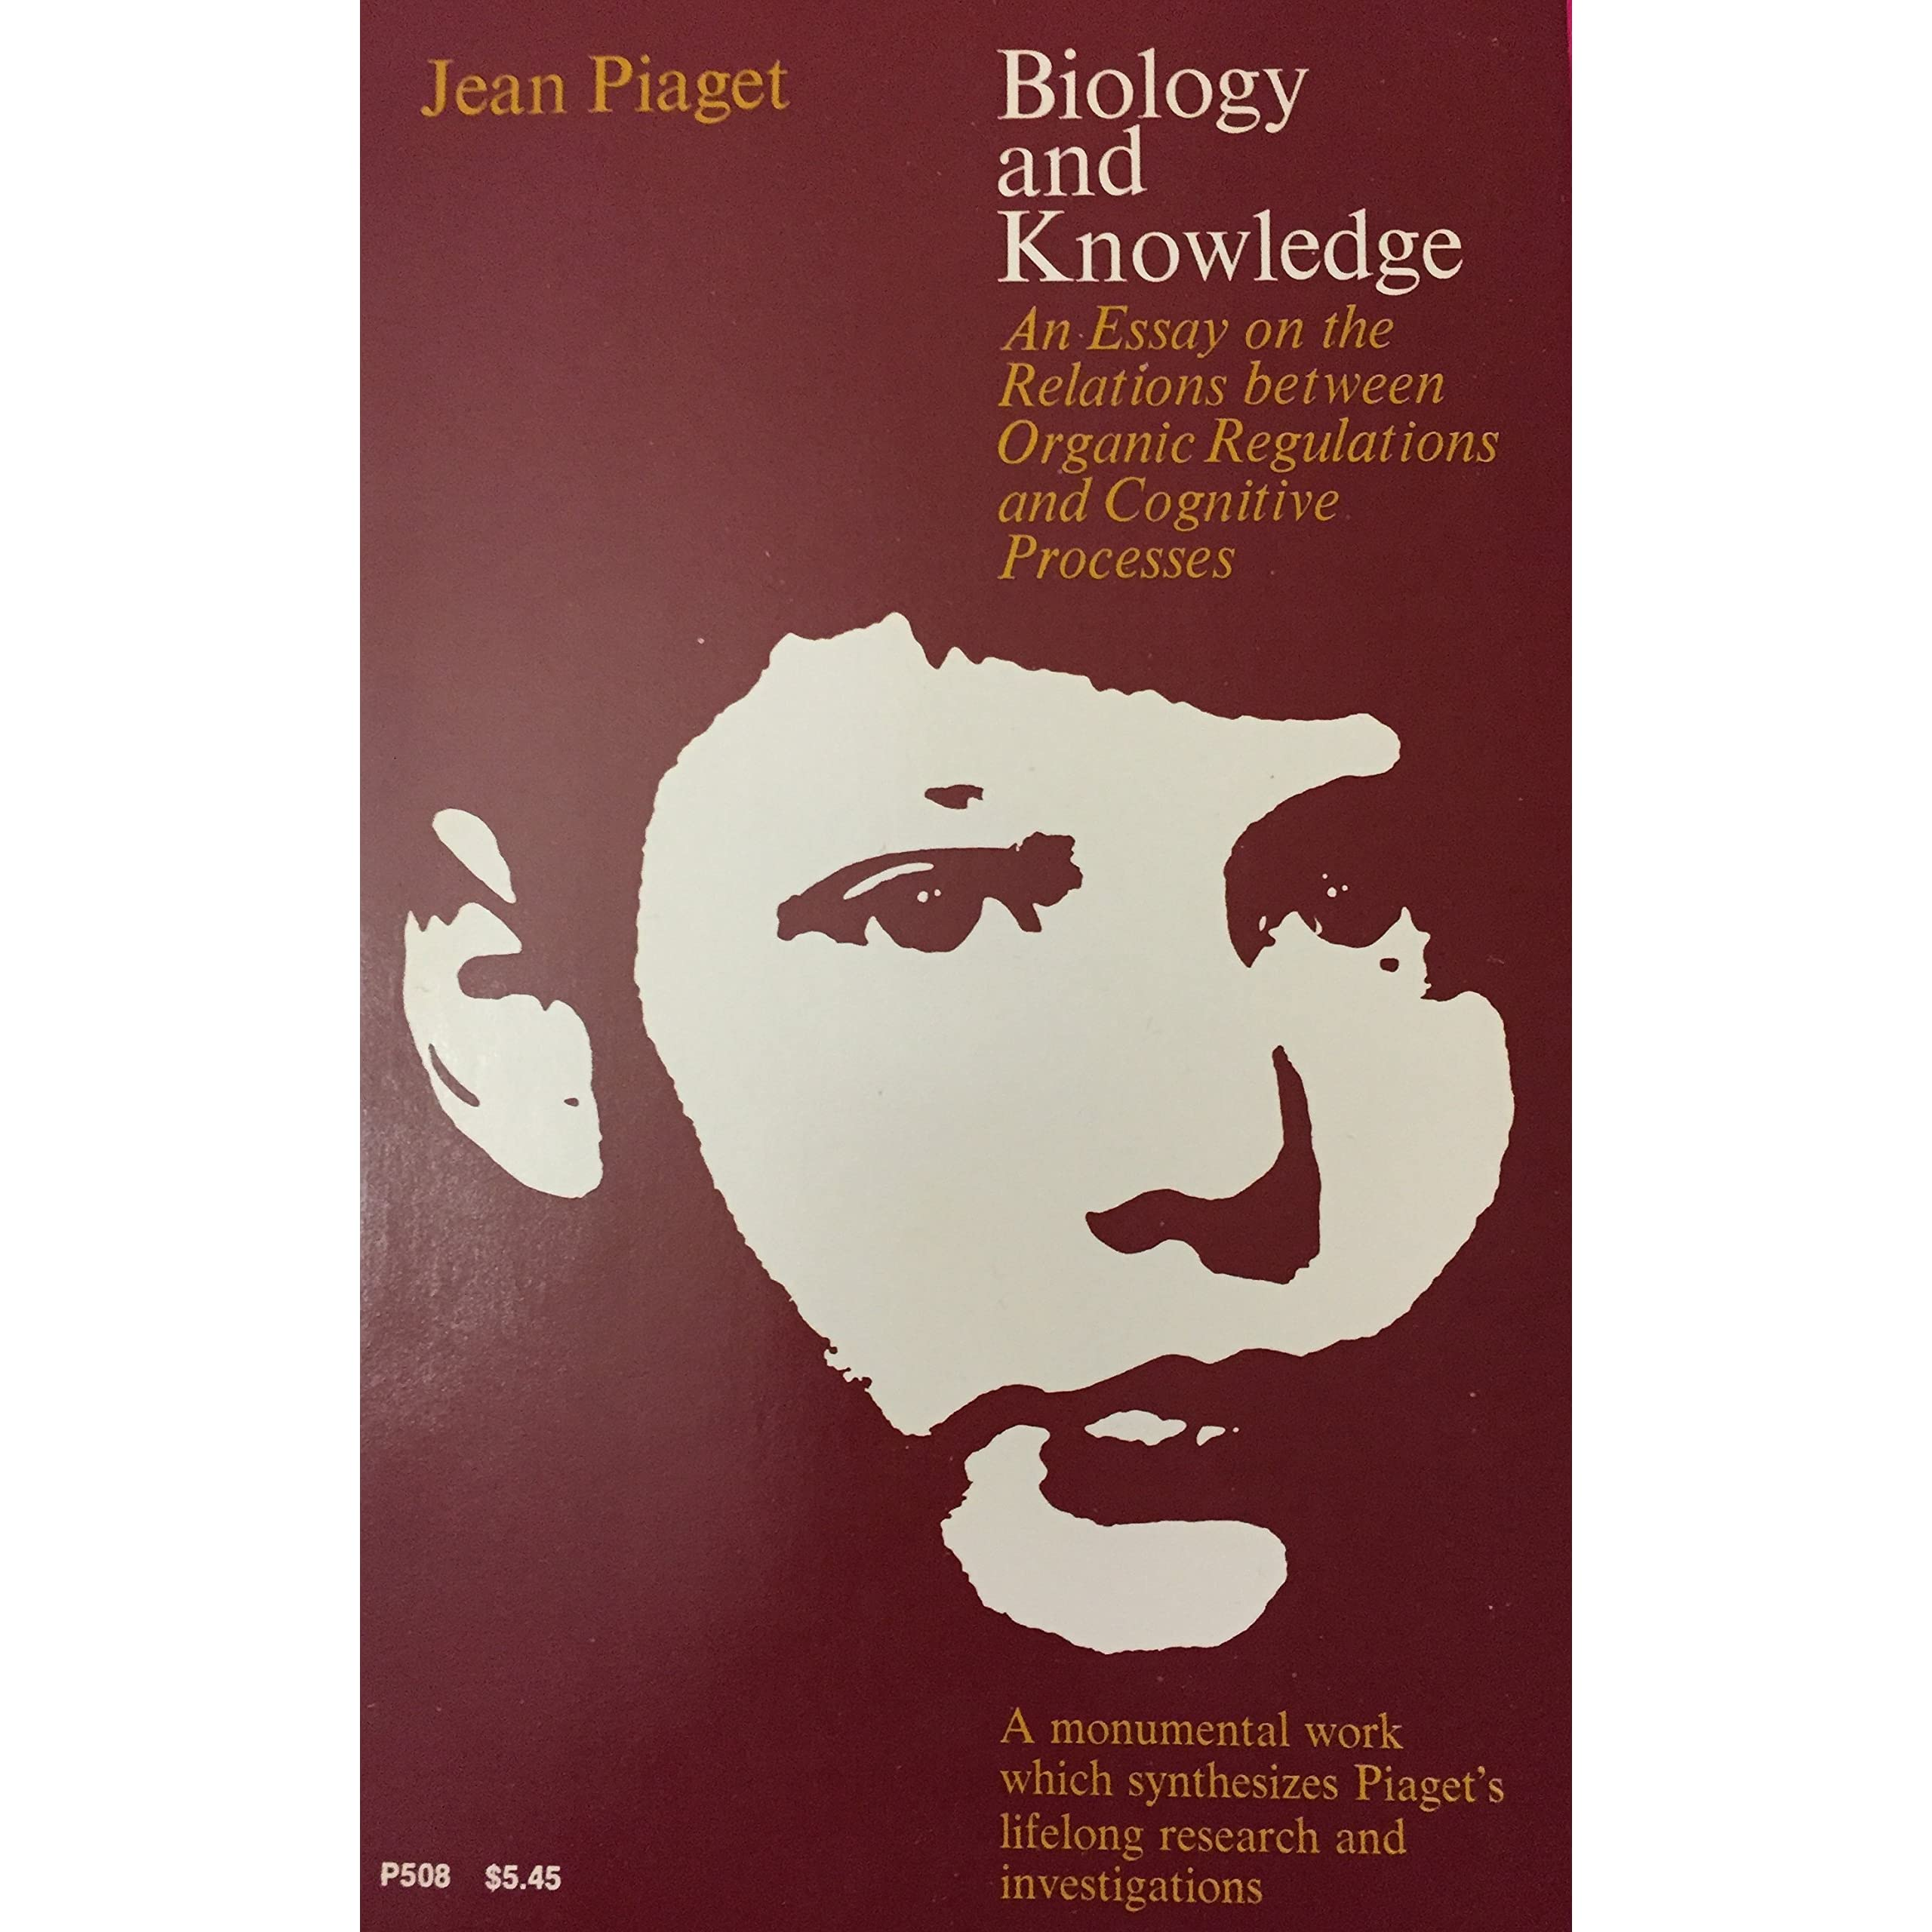 biology and knowledge an essay on the relations between organic biology and knowledge an essay on the relations between organic regulations and cognitive processes phoenix books p508 by jean piaget reviews